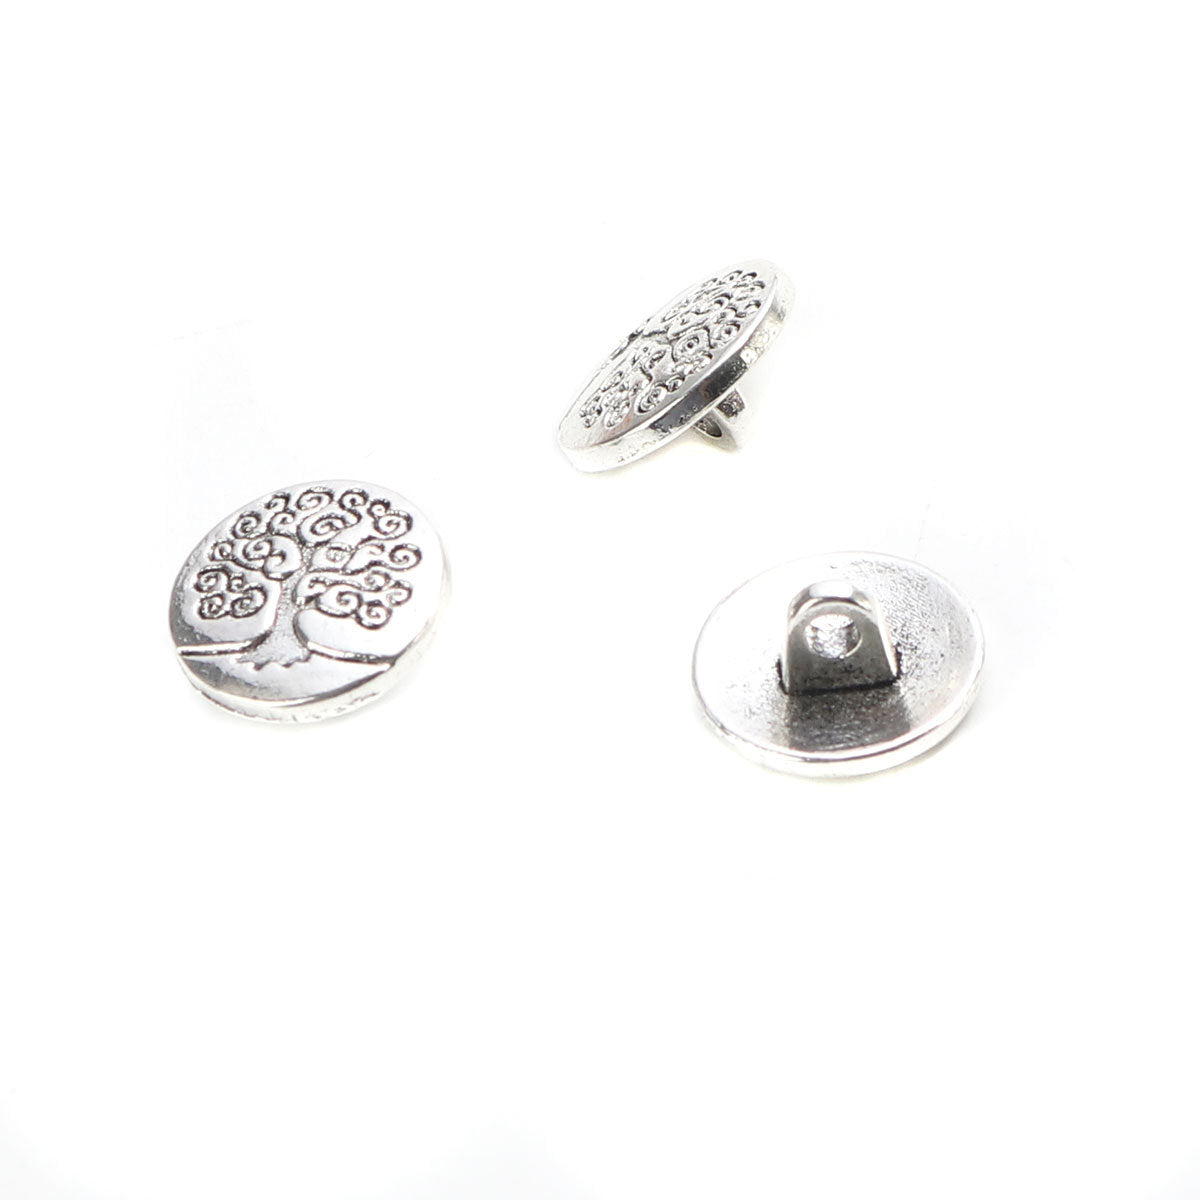 Tree of Life Silver Metal Sewing Buttons Round - Lead and Nickel Free - Antique Silver - Shank